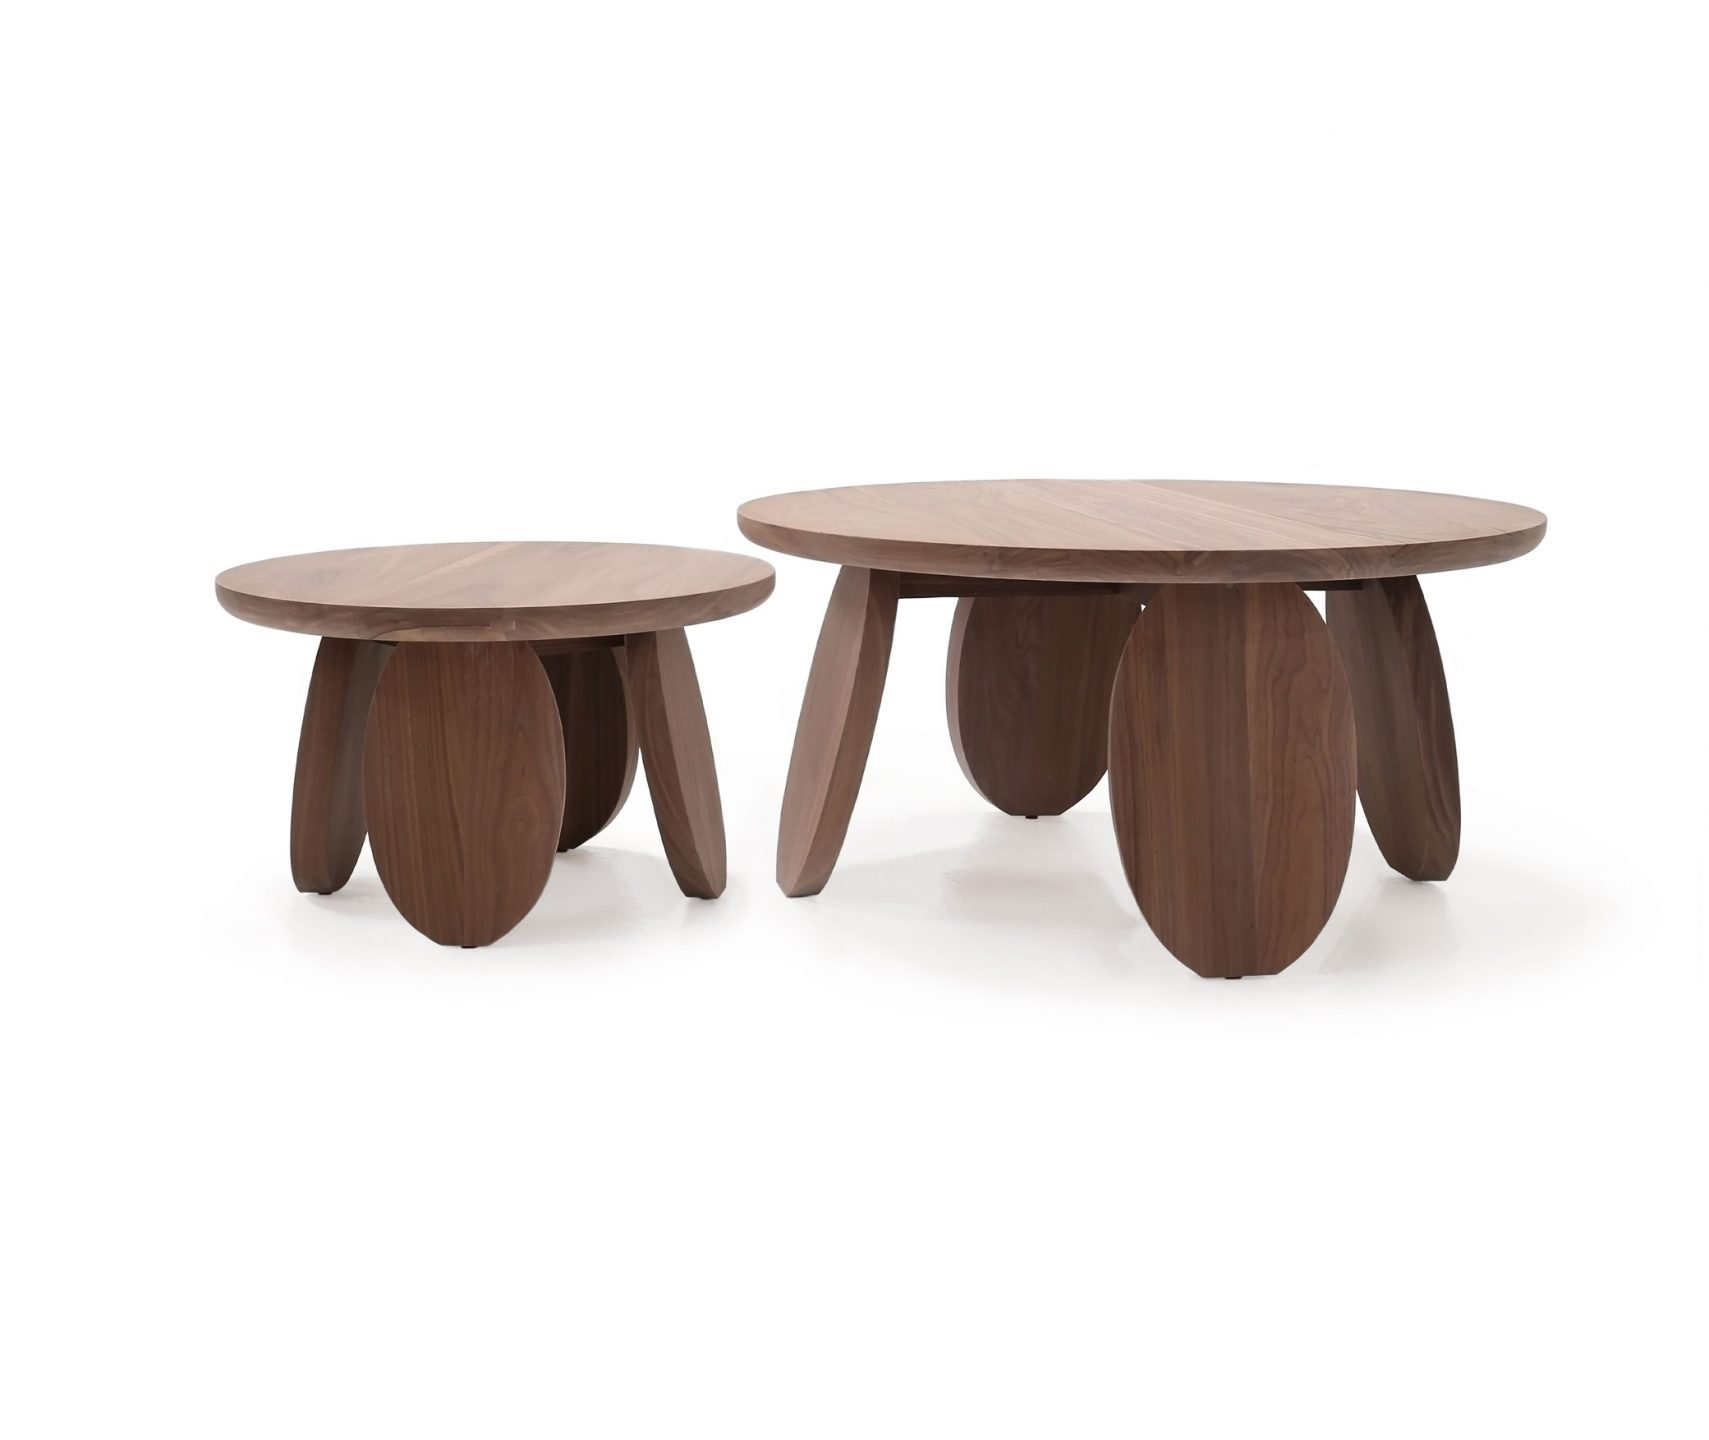 Verellen_Olive-36in-Round-24in-Round-Coffee-Tables_int_products